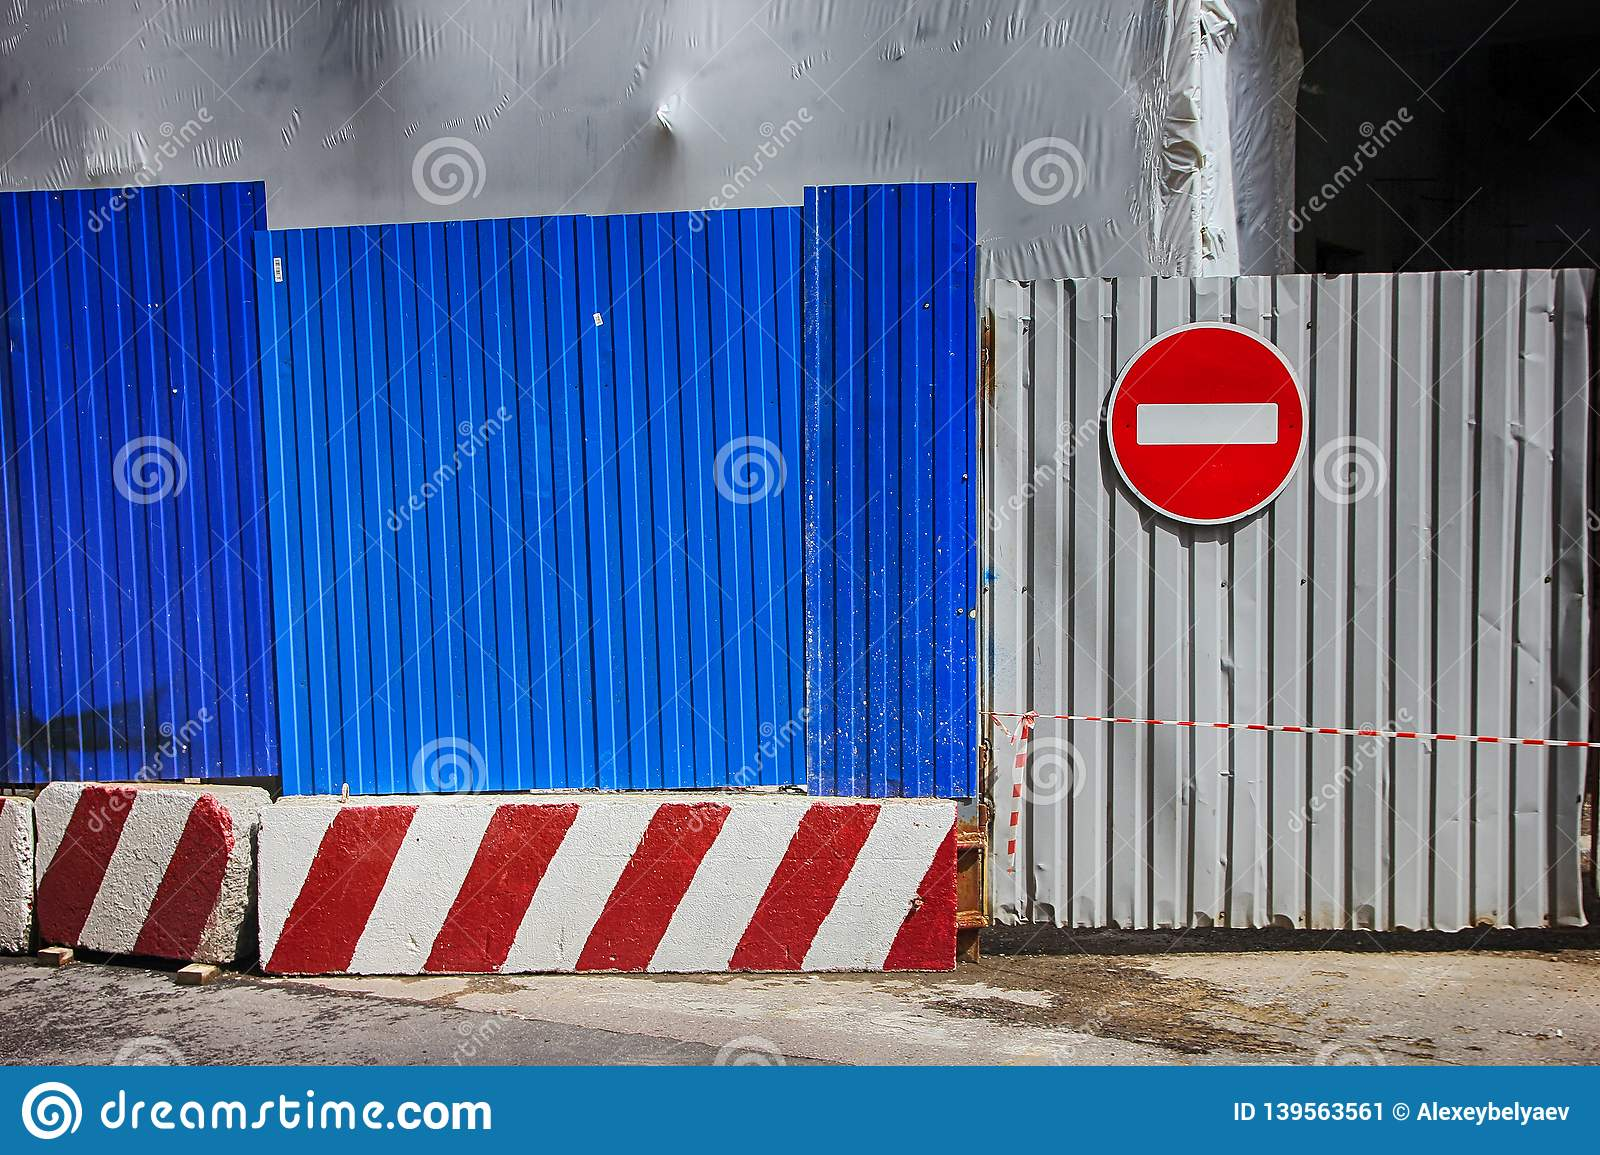 Fencing of construction site with red construction light on the background of blue profiled sheet fence and stop sign